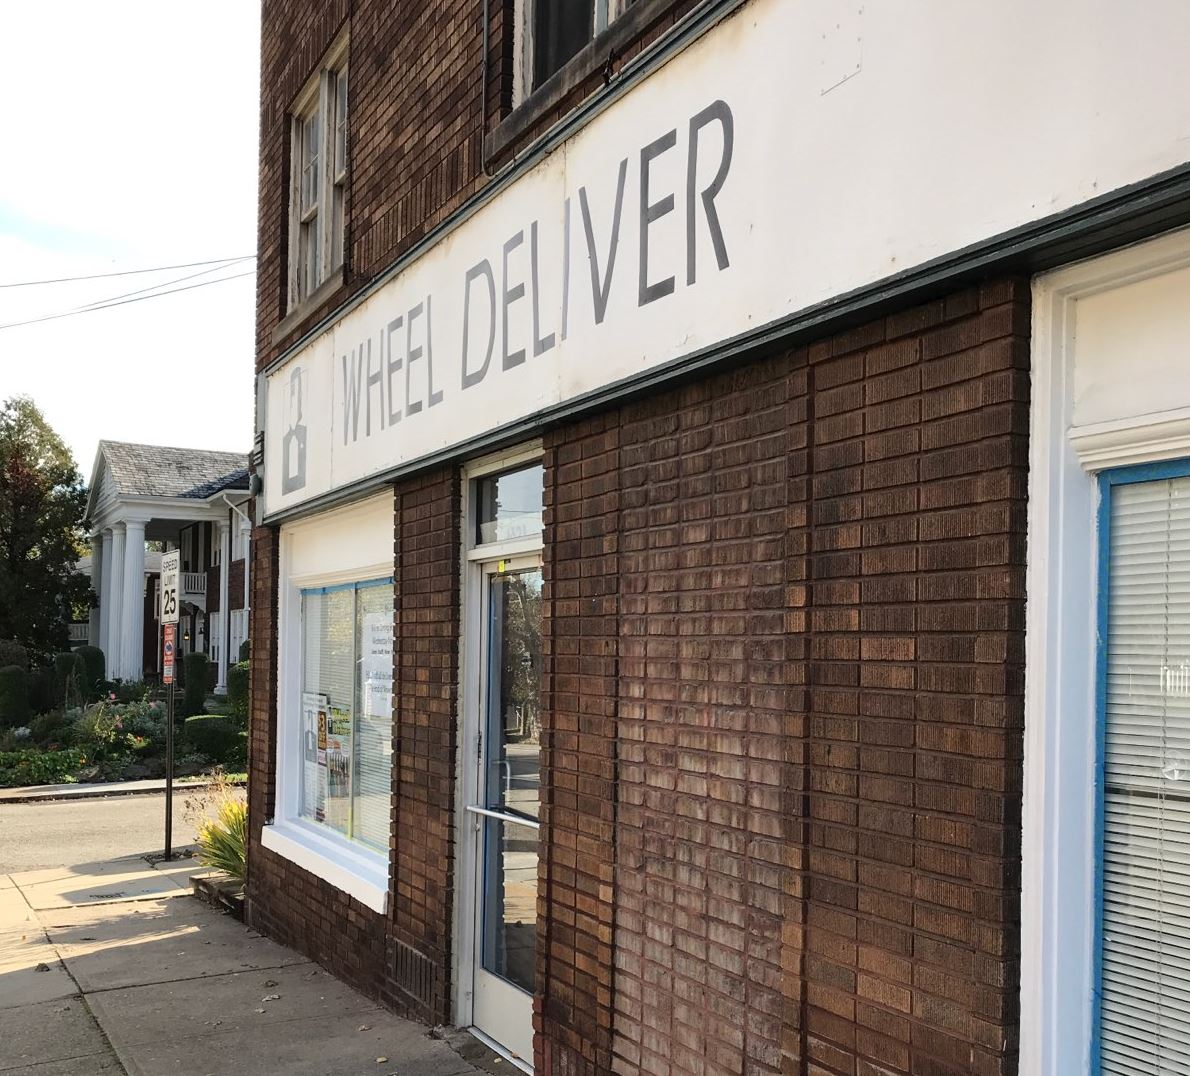 IMG_1181.jpg Whether it's temporarily or permanently closed, Wheel Deliver resides at 6524 Wilkins Ave. in Squirrel Hill.